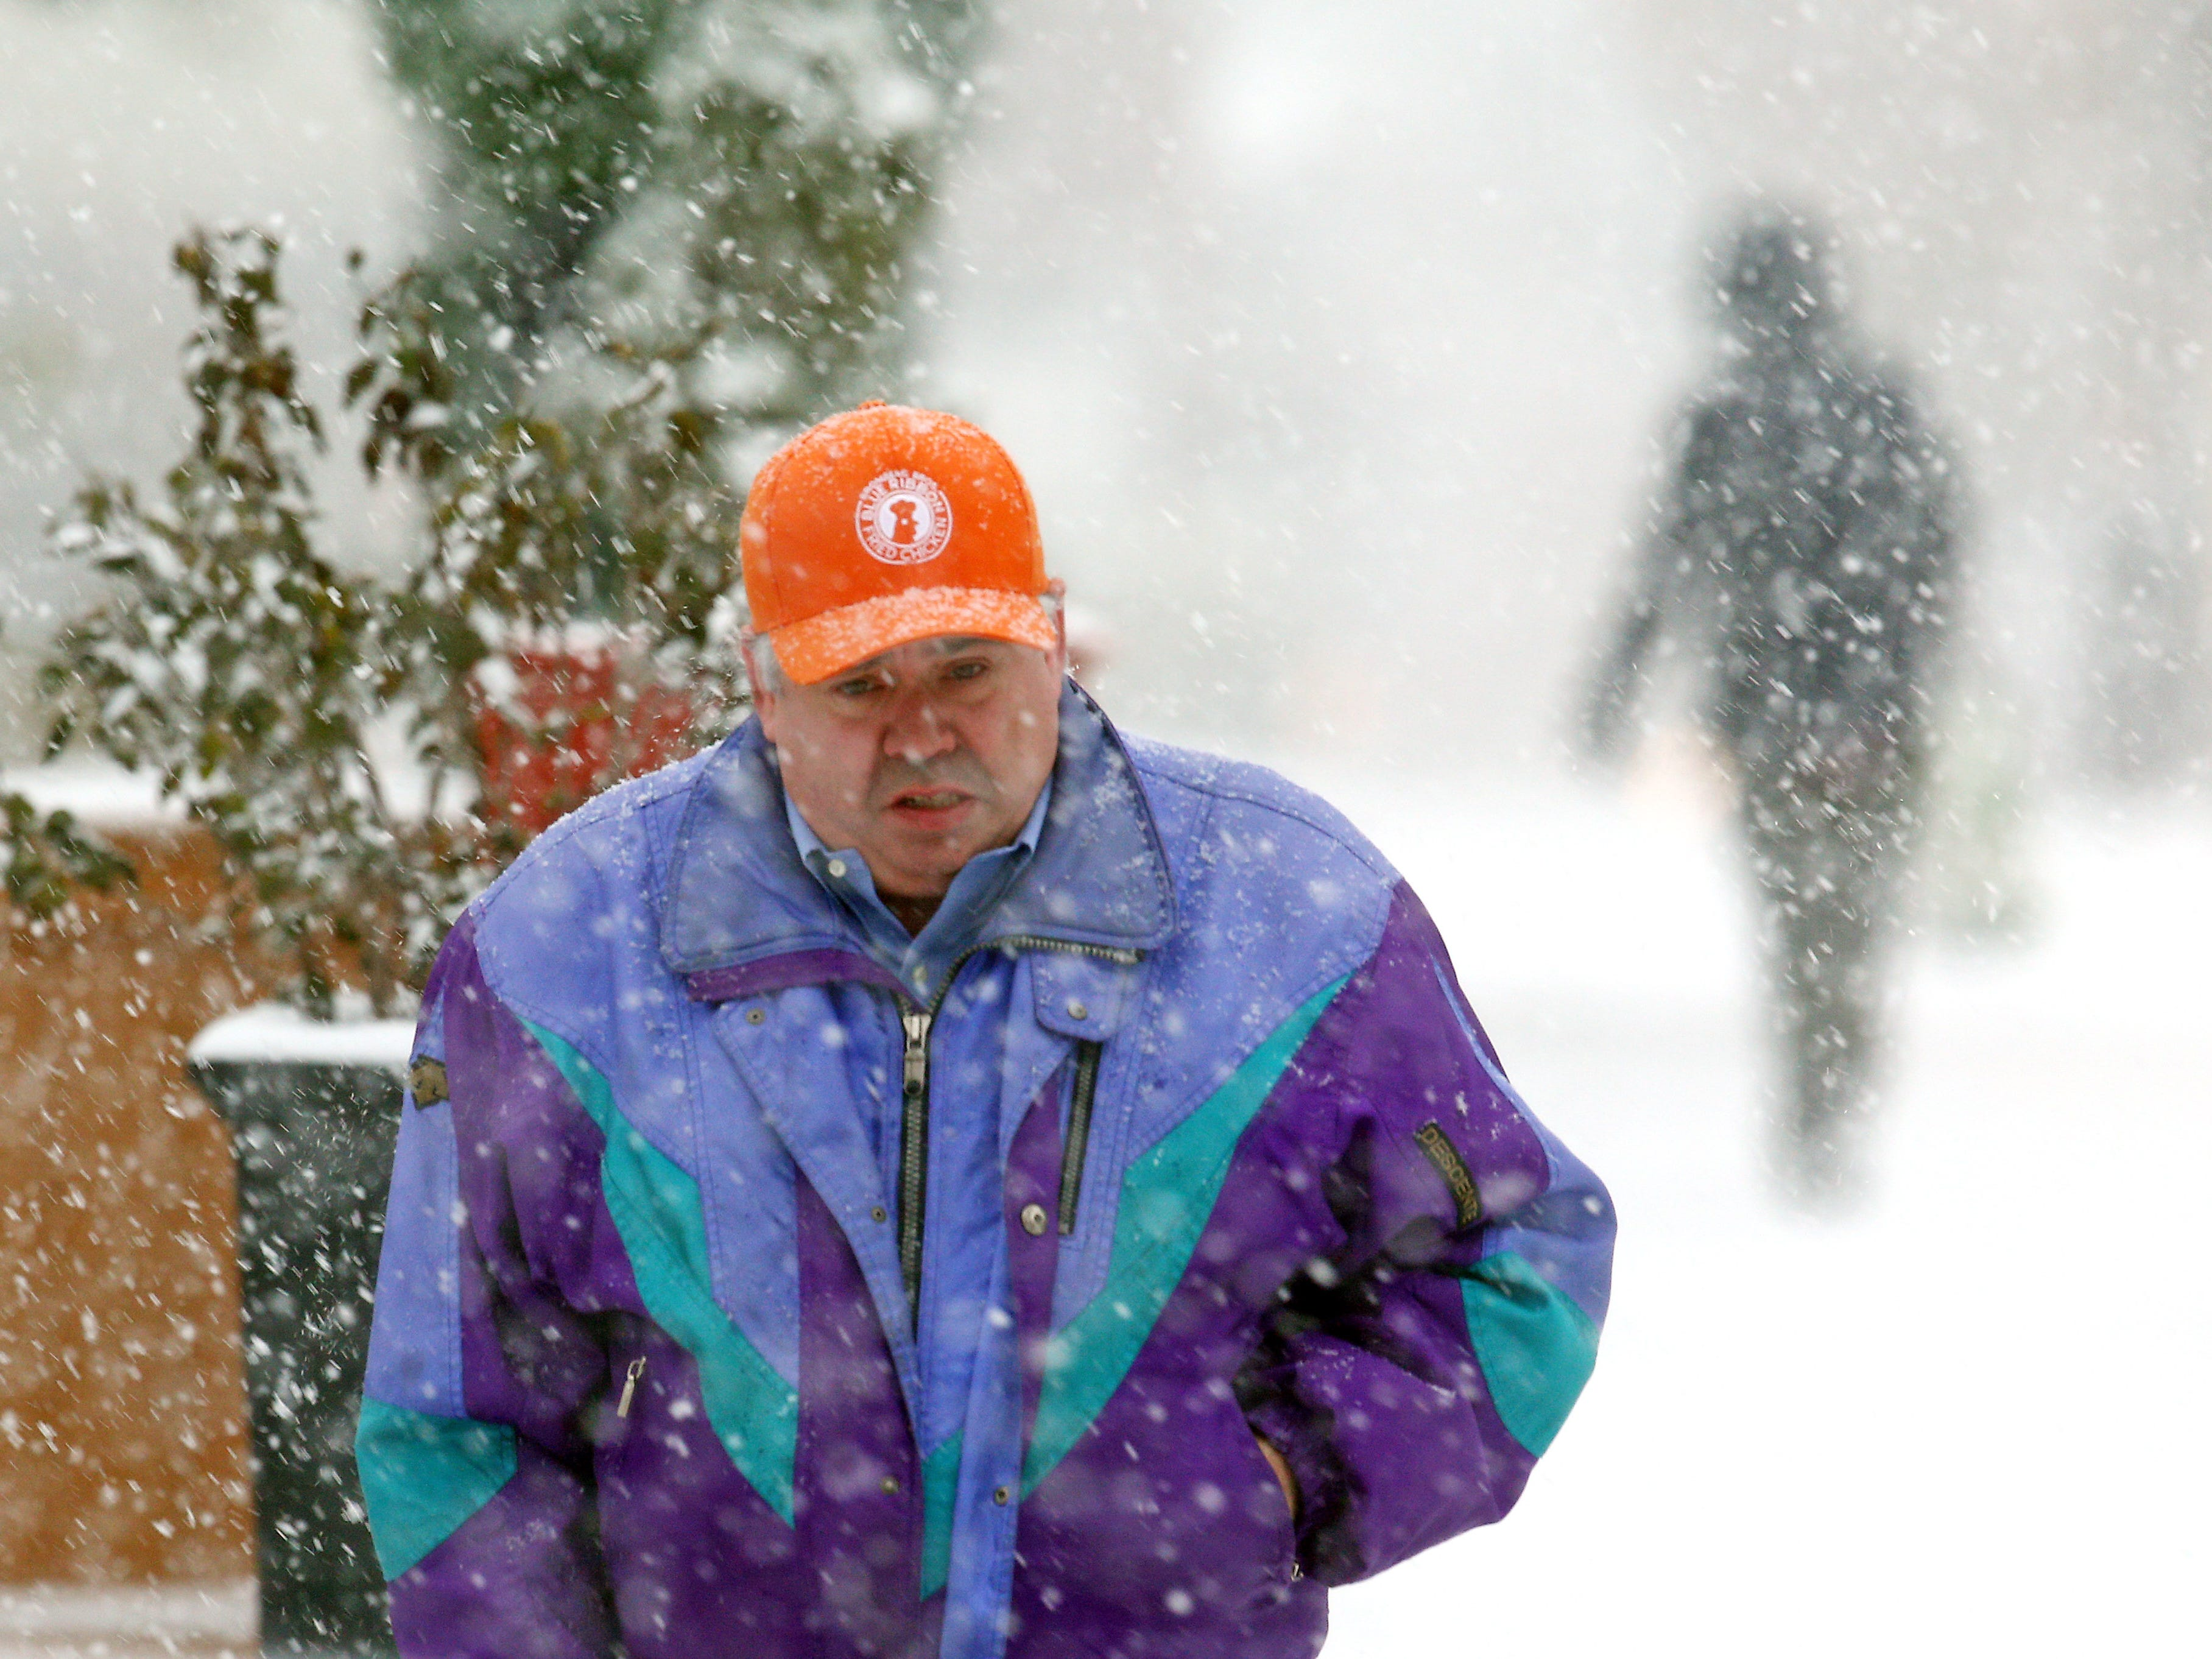 Snow starts to become heavier as pedestrians in Morristown navigate a predicted nor'easter, scheduled to dump over half a foot of snow and freezing rain on the area.  November 15, 2018, Morristown, NJ